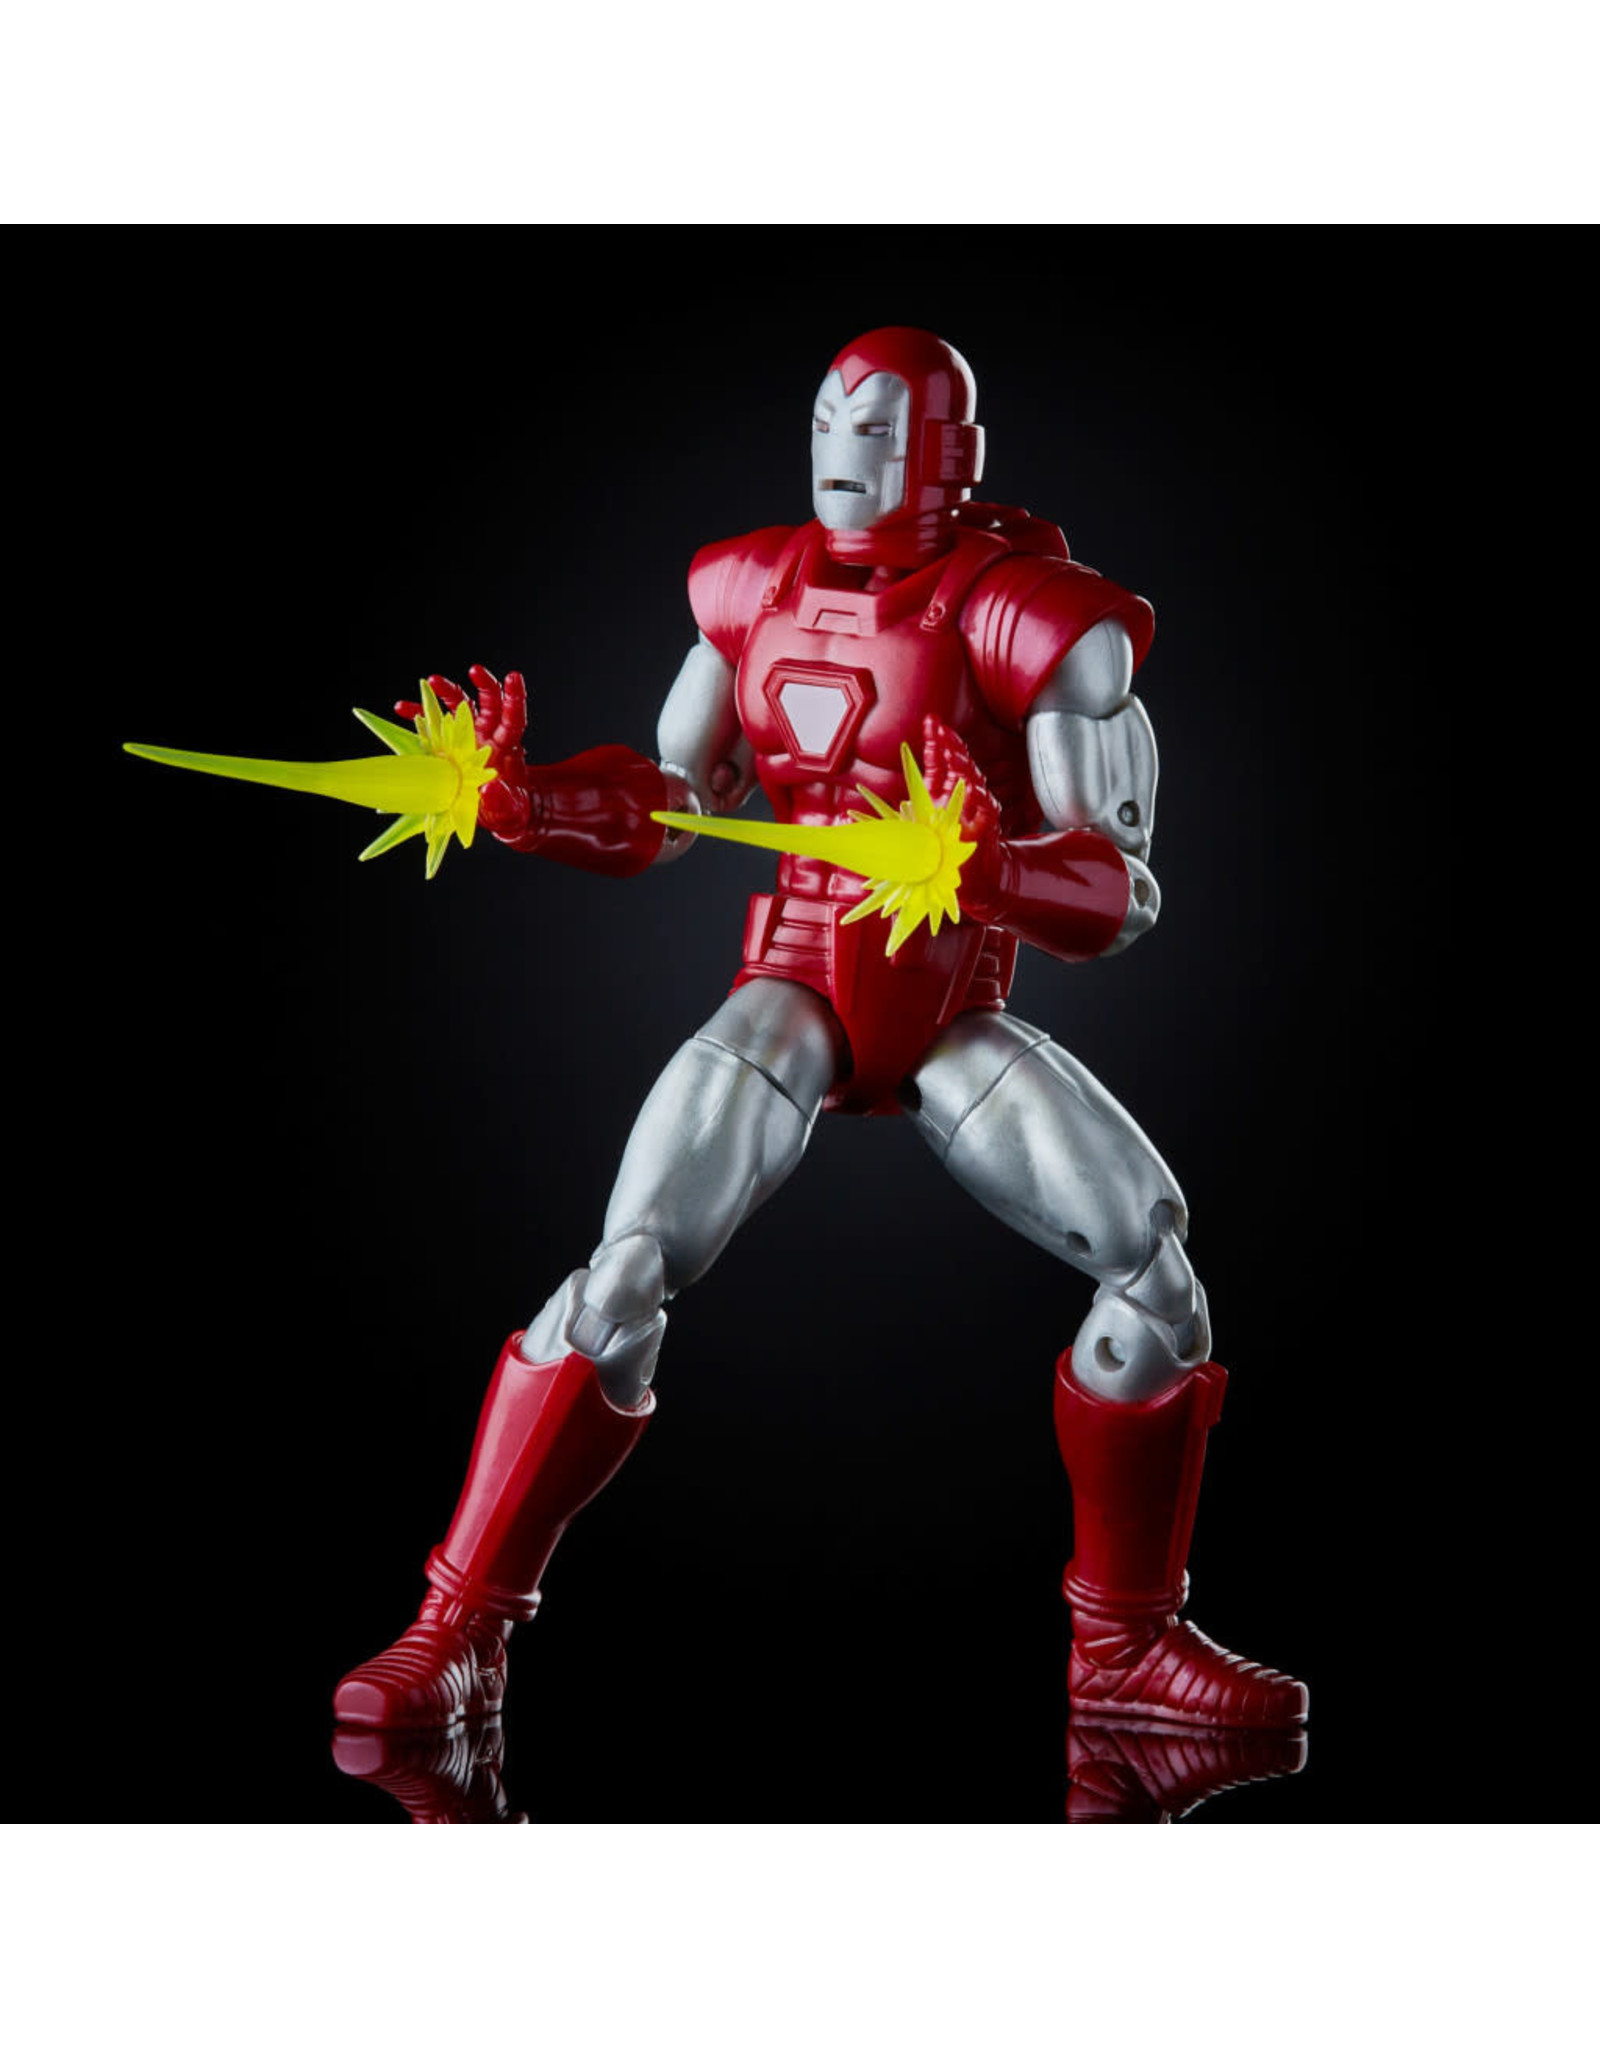 HASBRO MARVEL LEGENDS 6 inch IRON MAN SILVER CENTURION Exclusive ACTION FIGURE